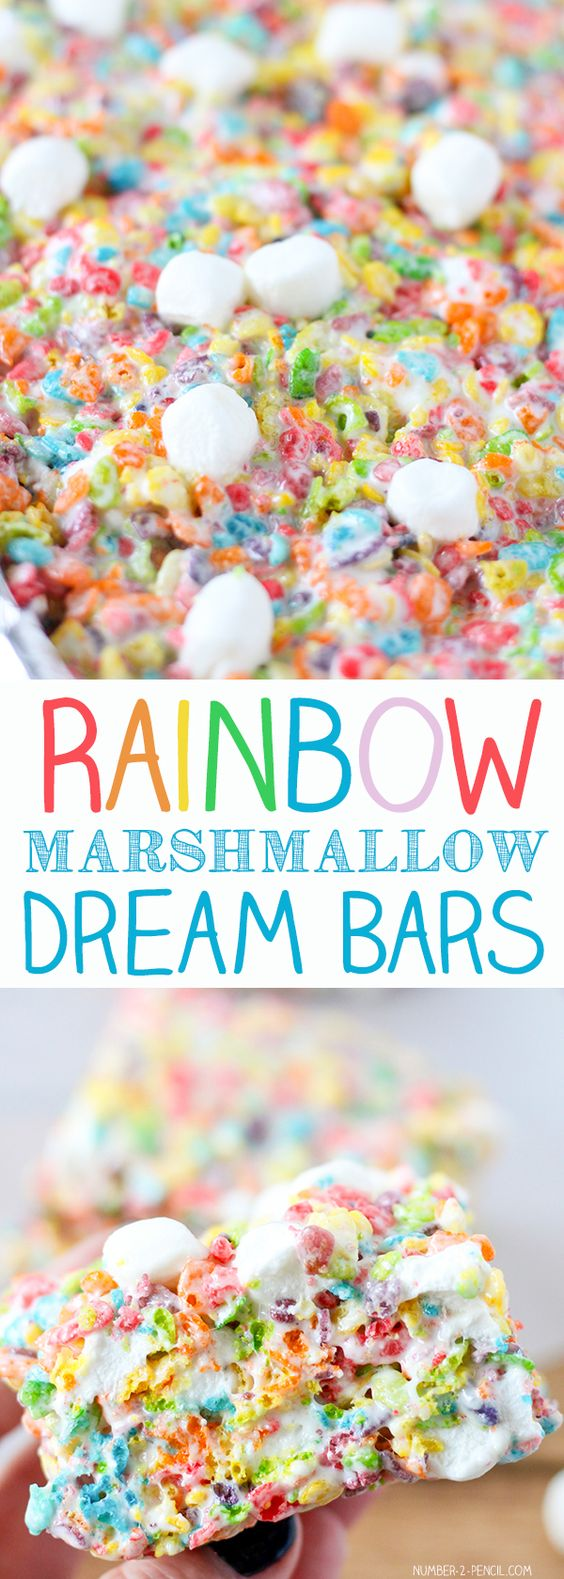 Unicorn desserts for a unicorn party: Rainbow Marshmallow Dream Bars